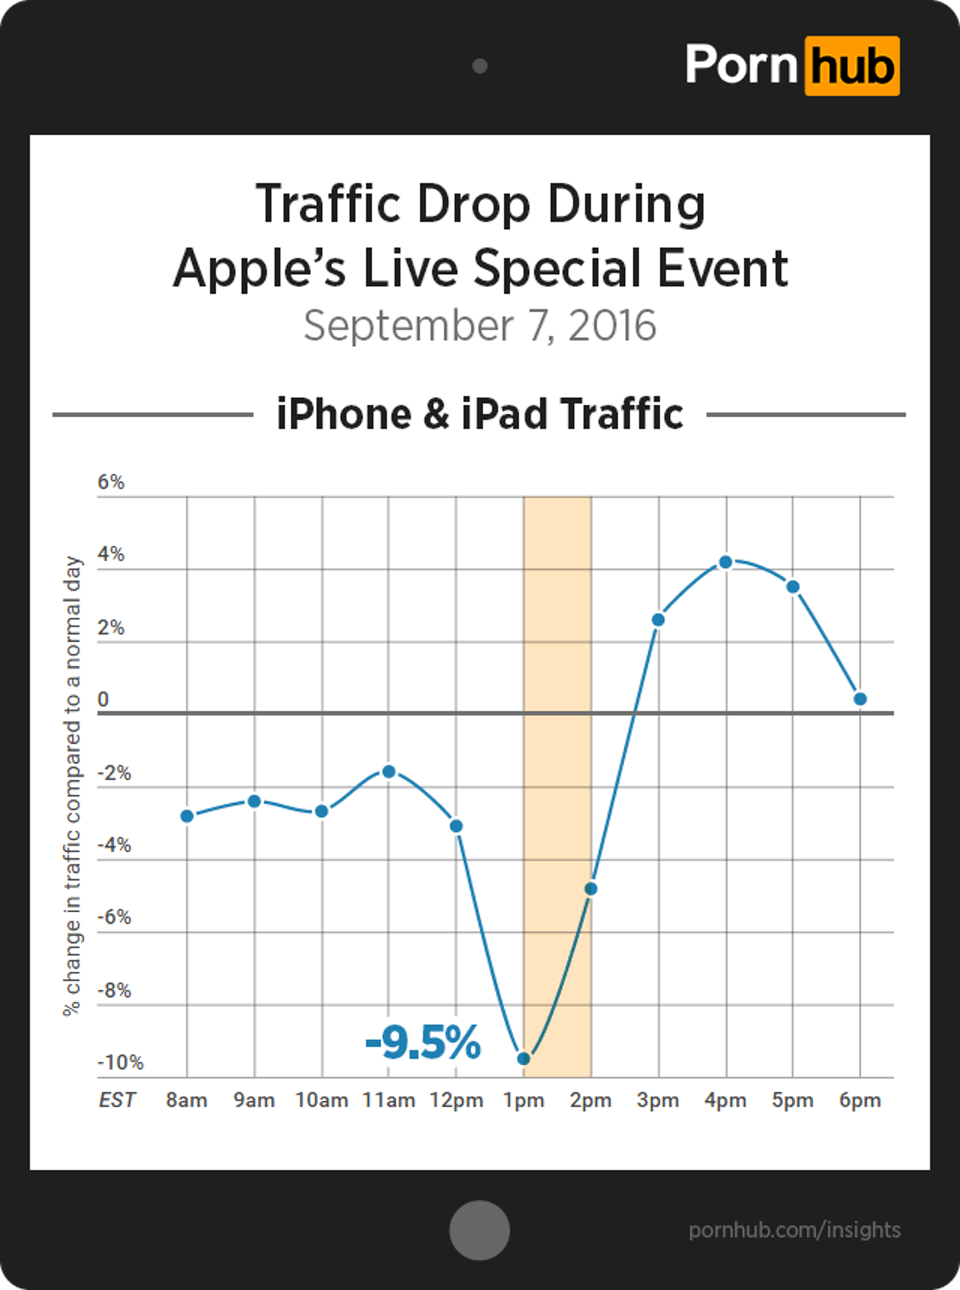 Pornhub experienced a 9.5% drop in iPhone and iPad traffic during Apple's iPhone 7 keynote, and a surge immediately thereafter.